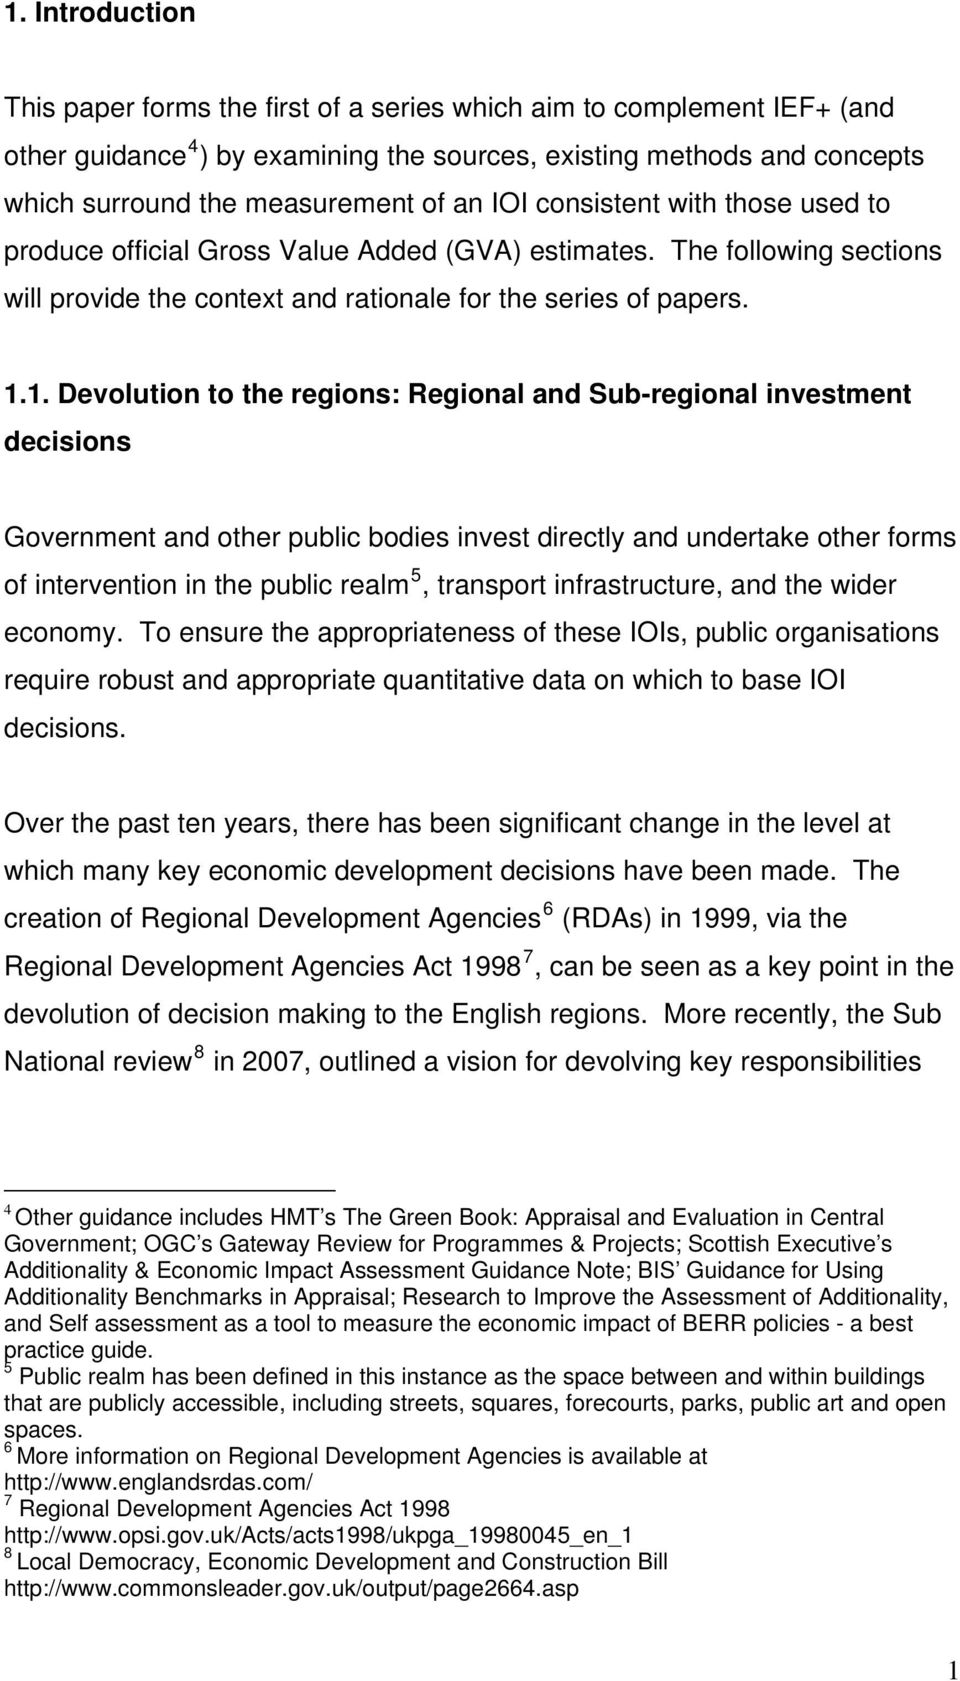 1. Devolution to the regions: Regional and Sub-regional investment decisions Government and other public bodies invest directly and undertake other forms of intervention in the public realm 5,